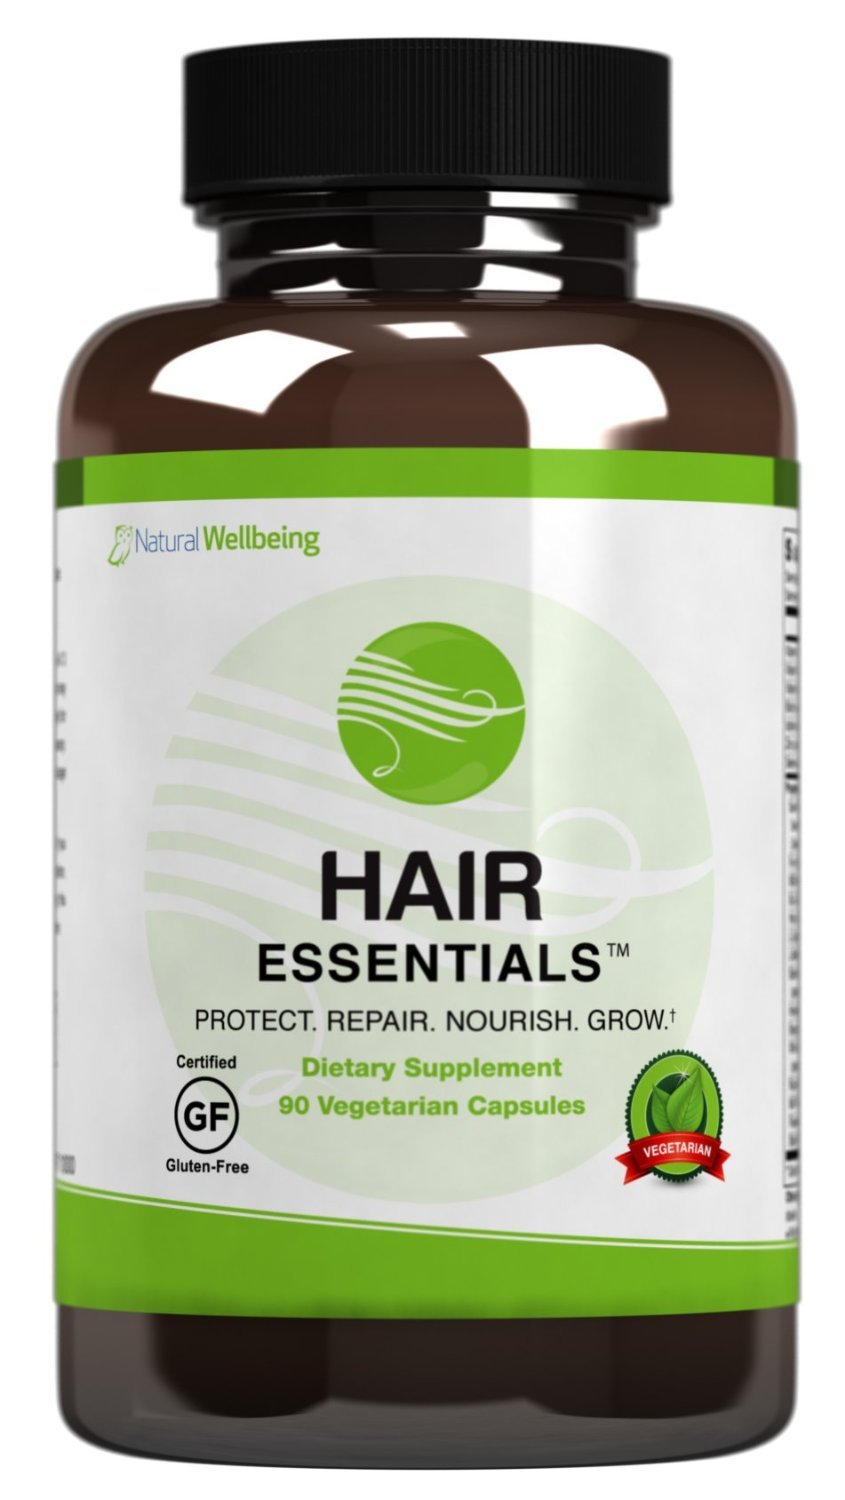 Hair Essentials Natural Hair Growth Supplement for Women and Men-All New Mega Pack- 180 Vegitarian Capsules